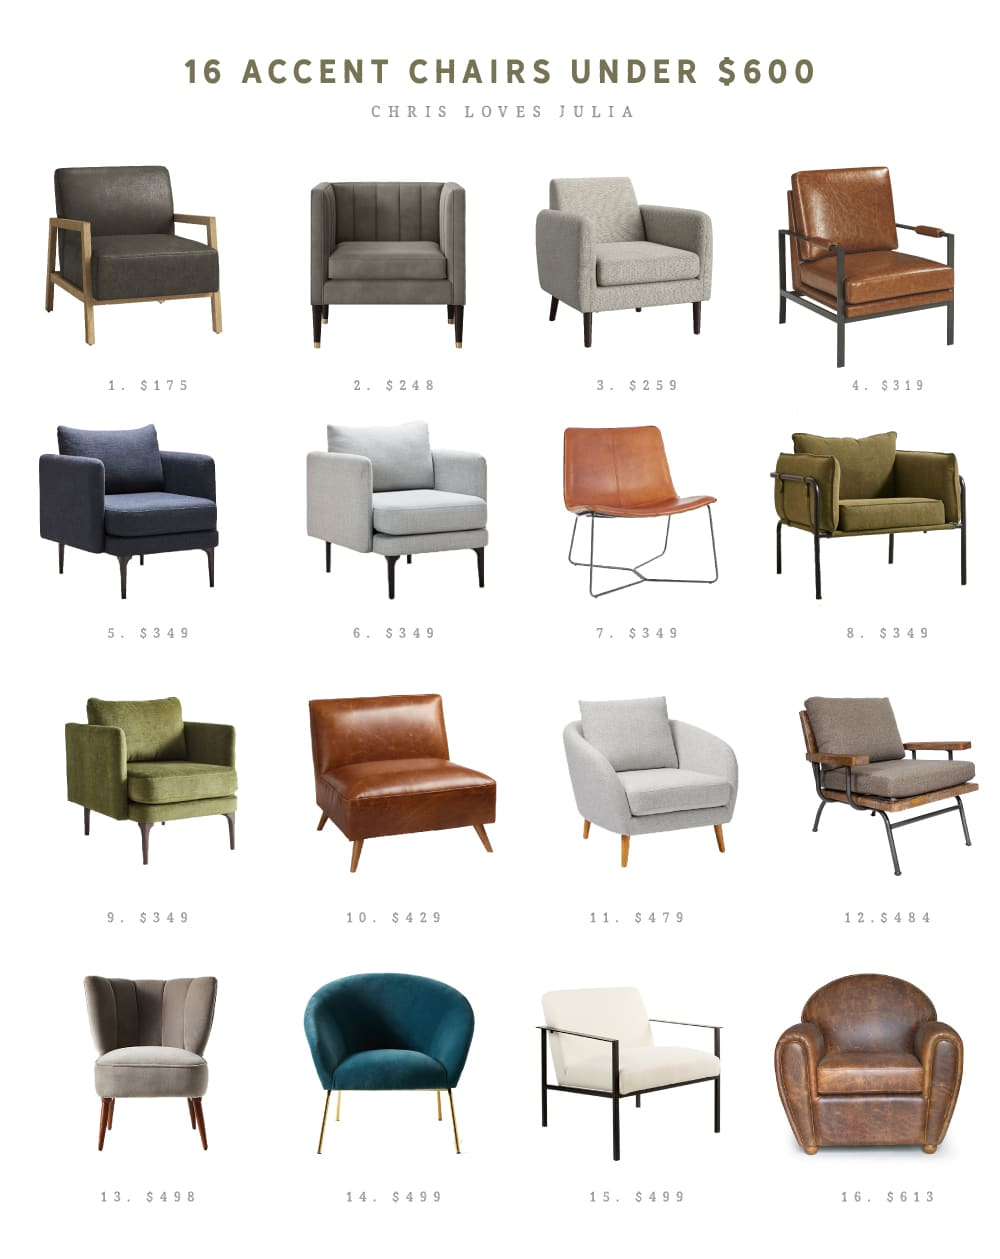 14 Popular Living Room Layouts Accent Chairs Under 600 Chris Loves Julia